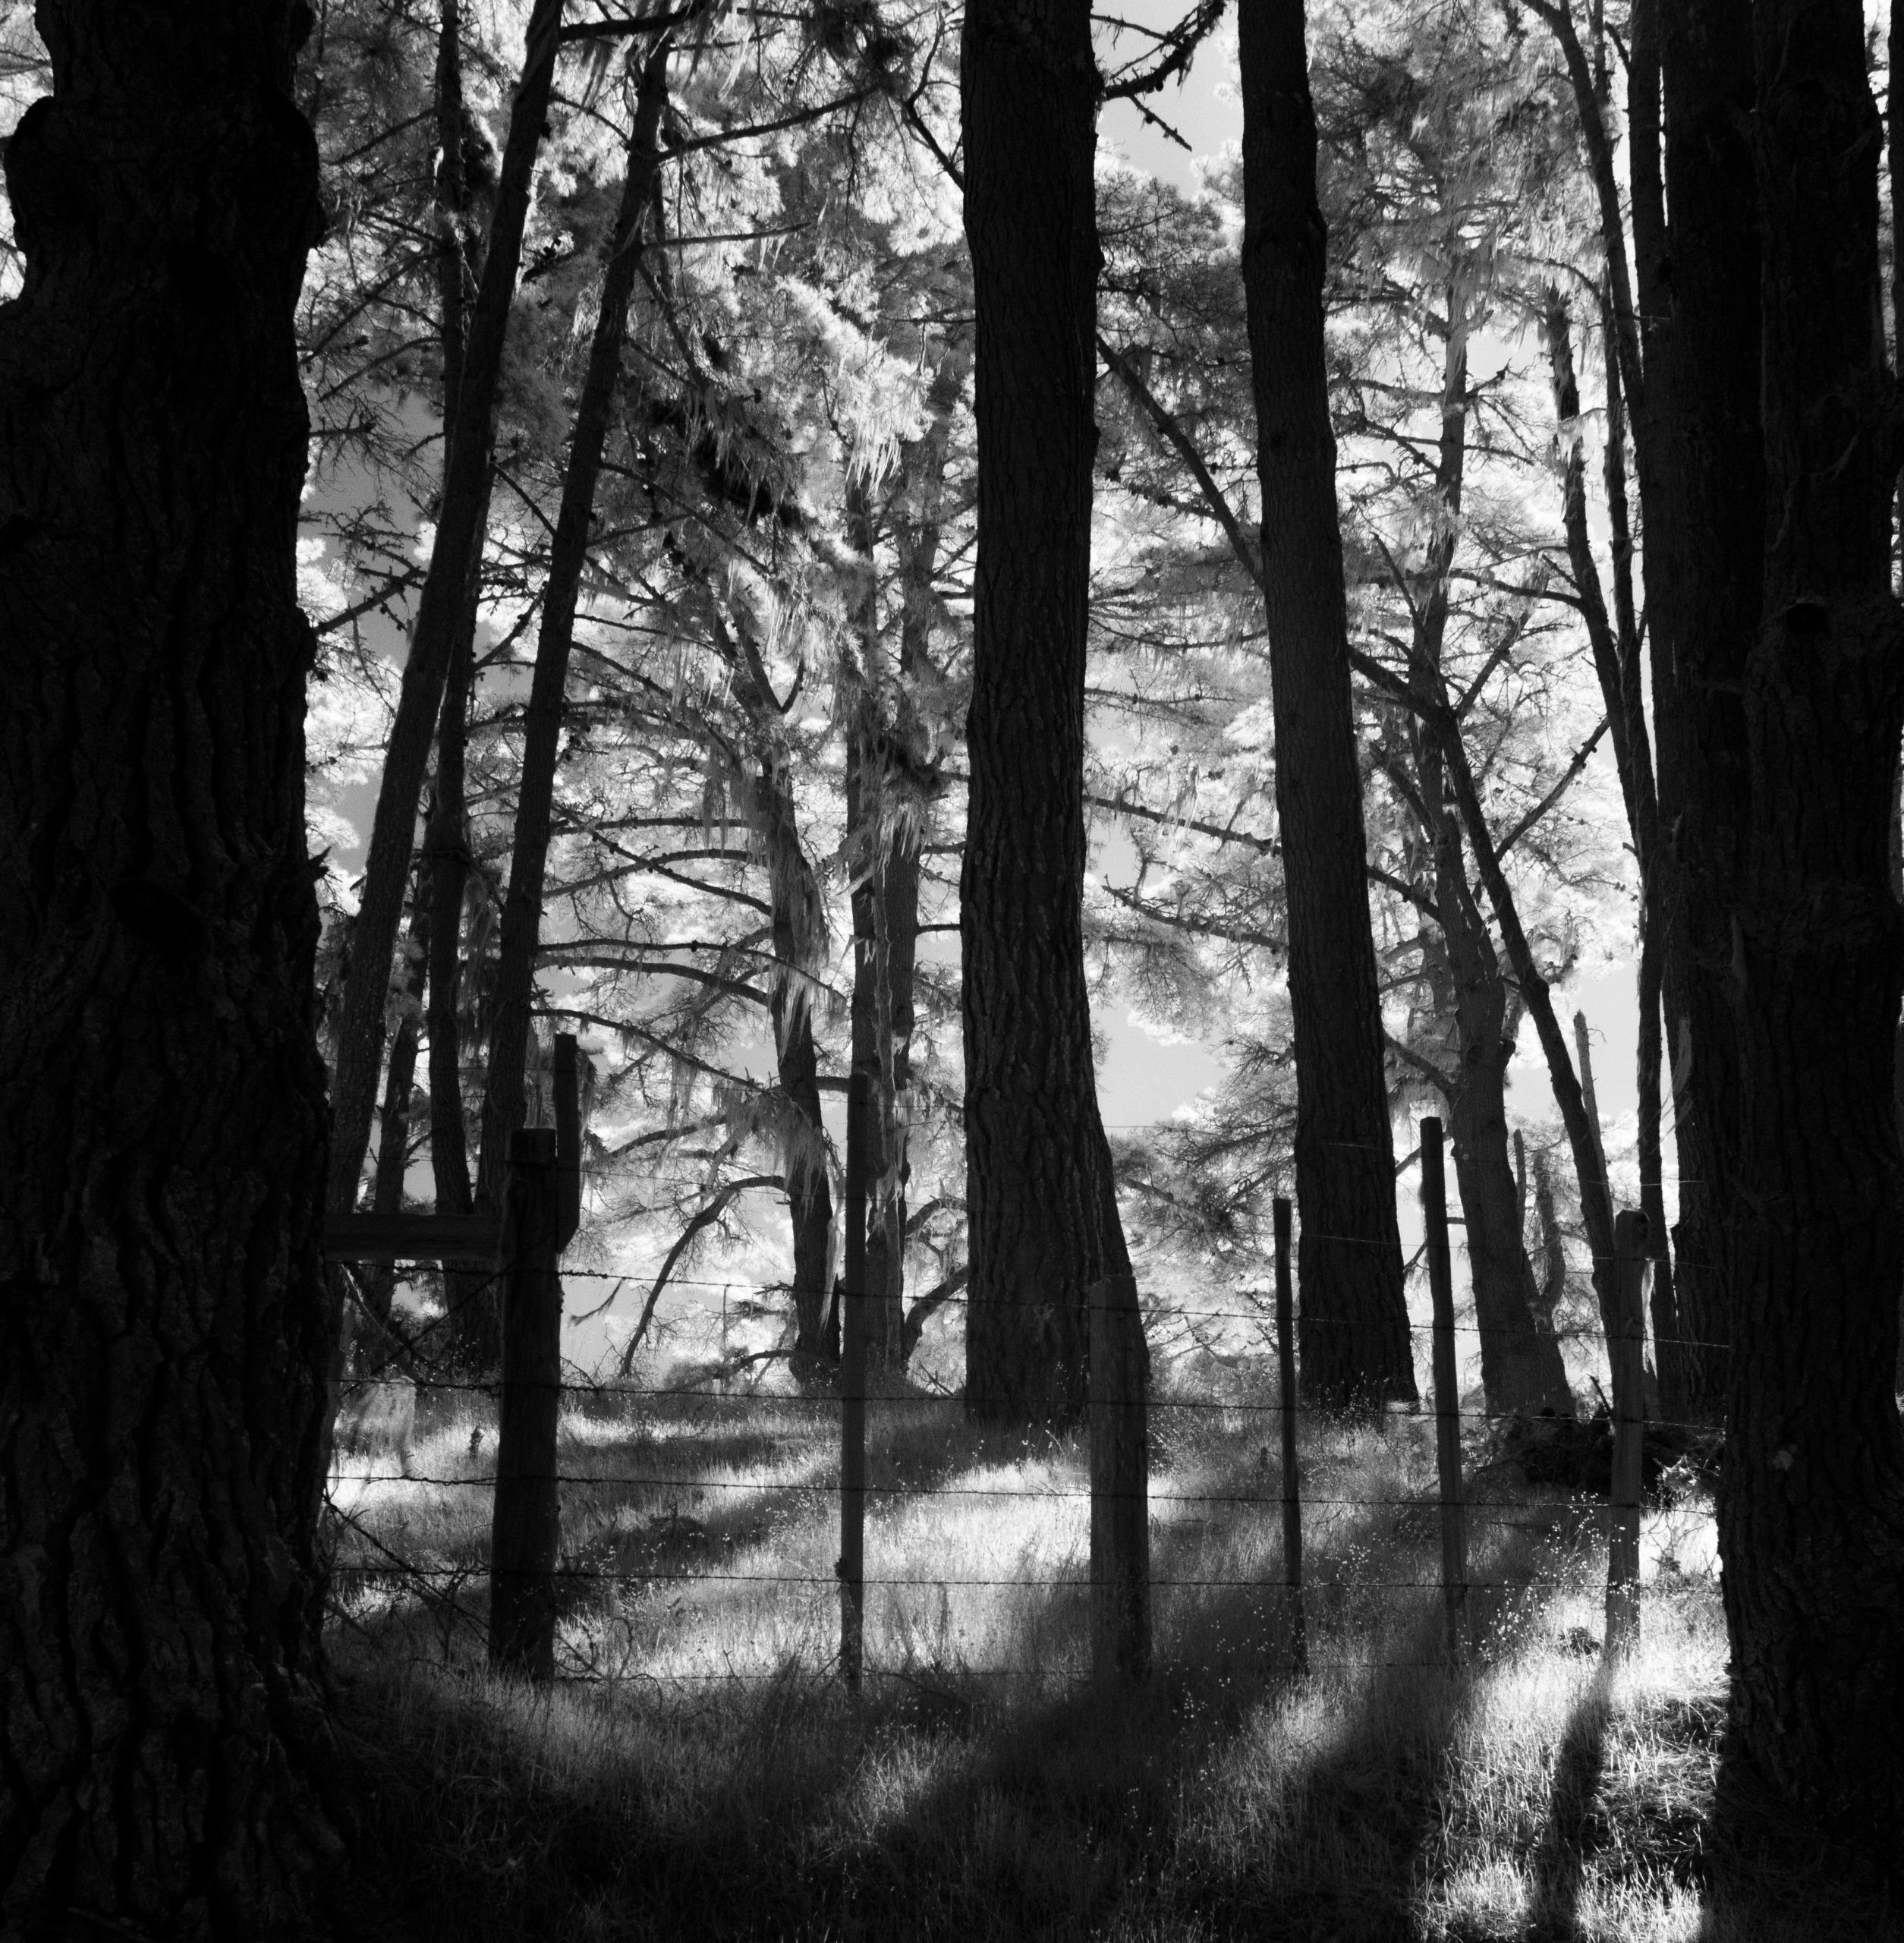 A black and white image of soft light shining through the forest.